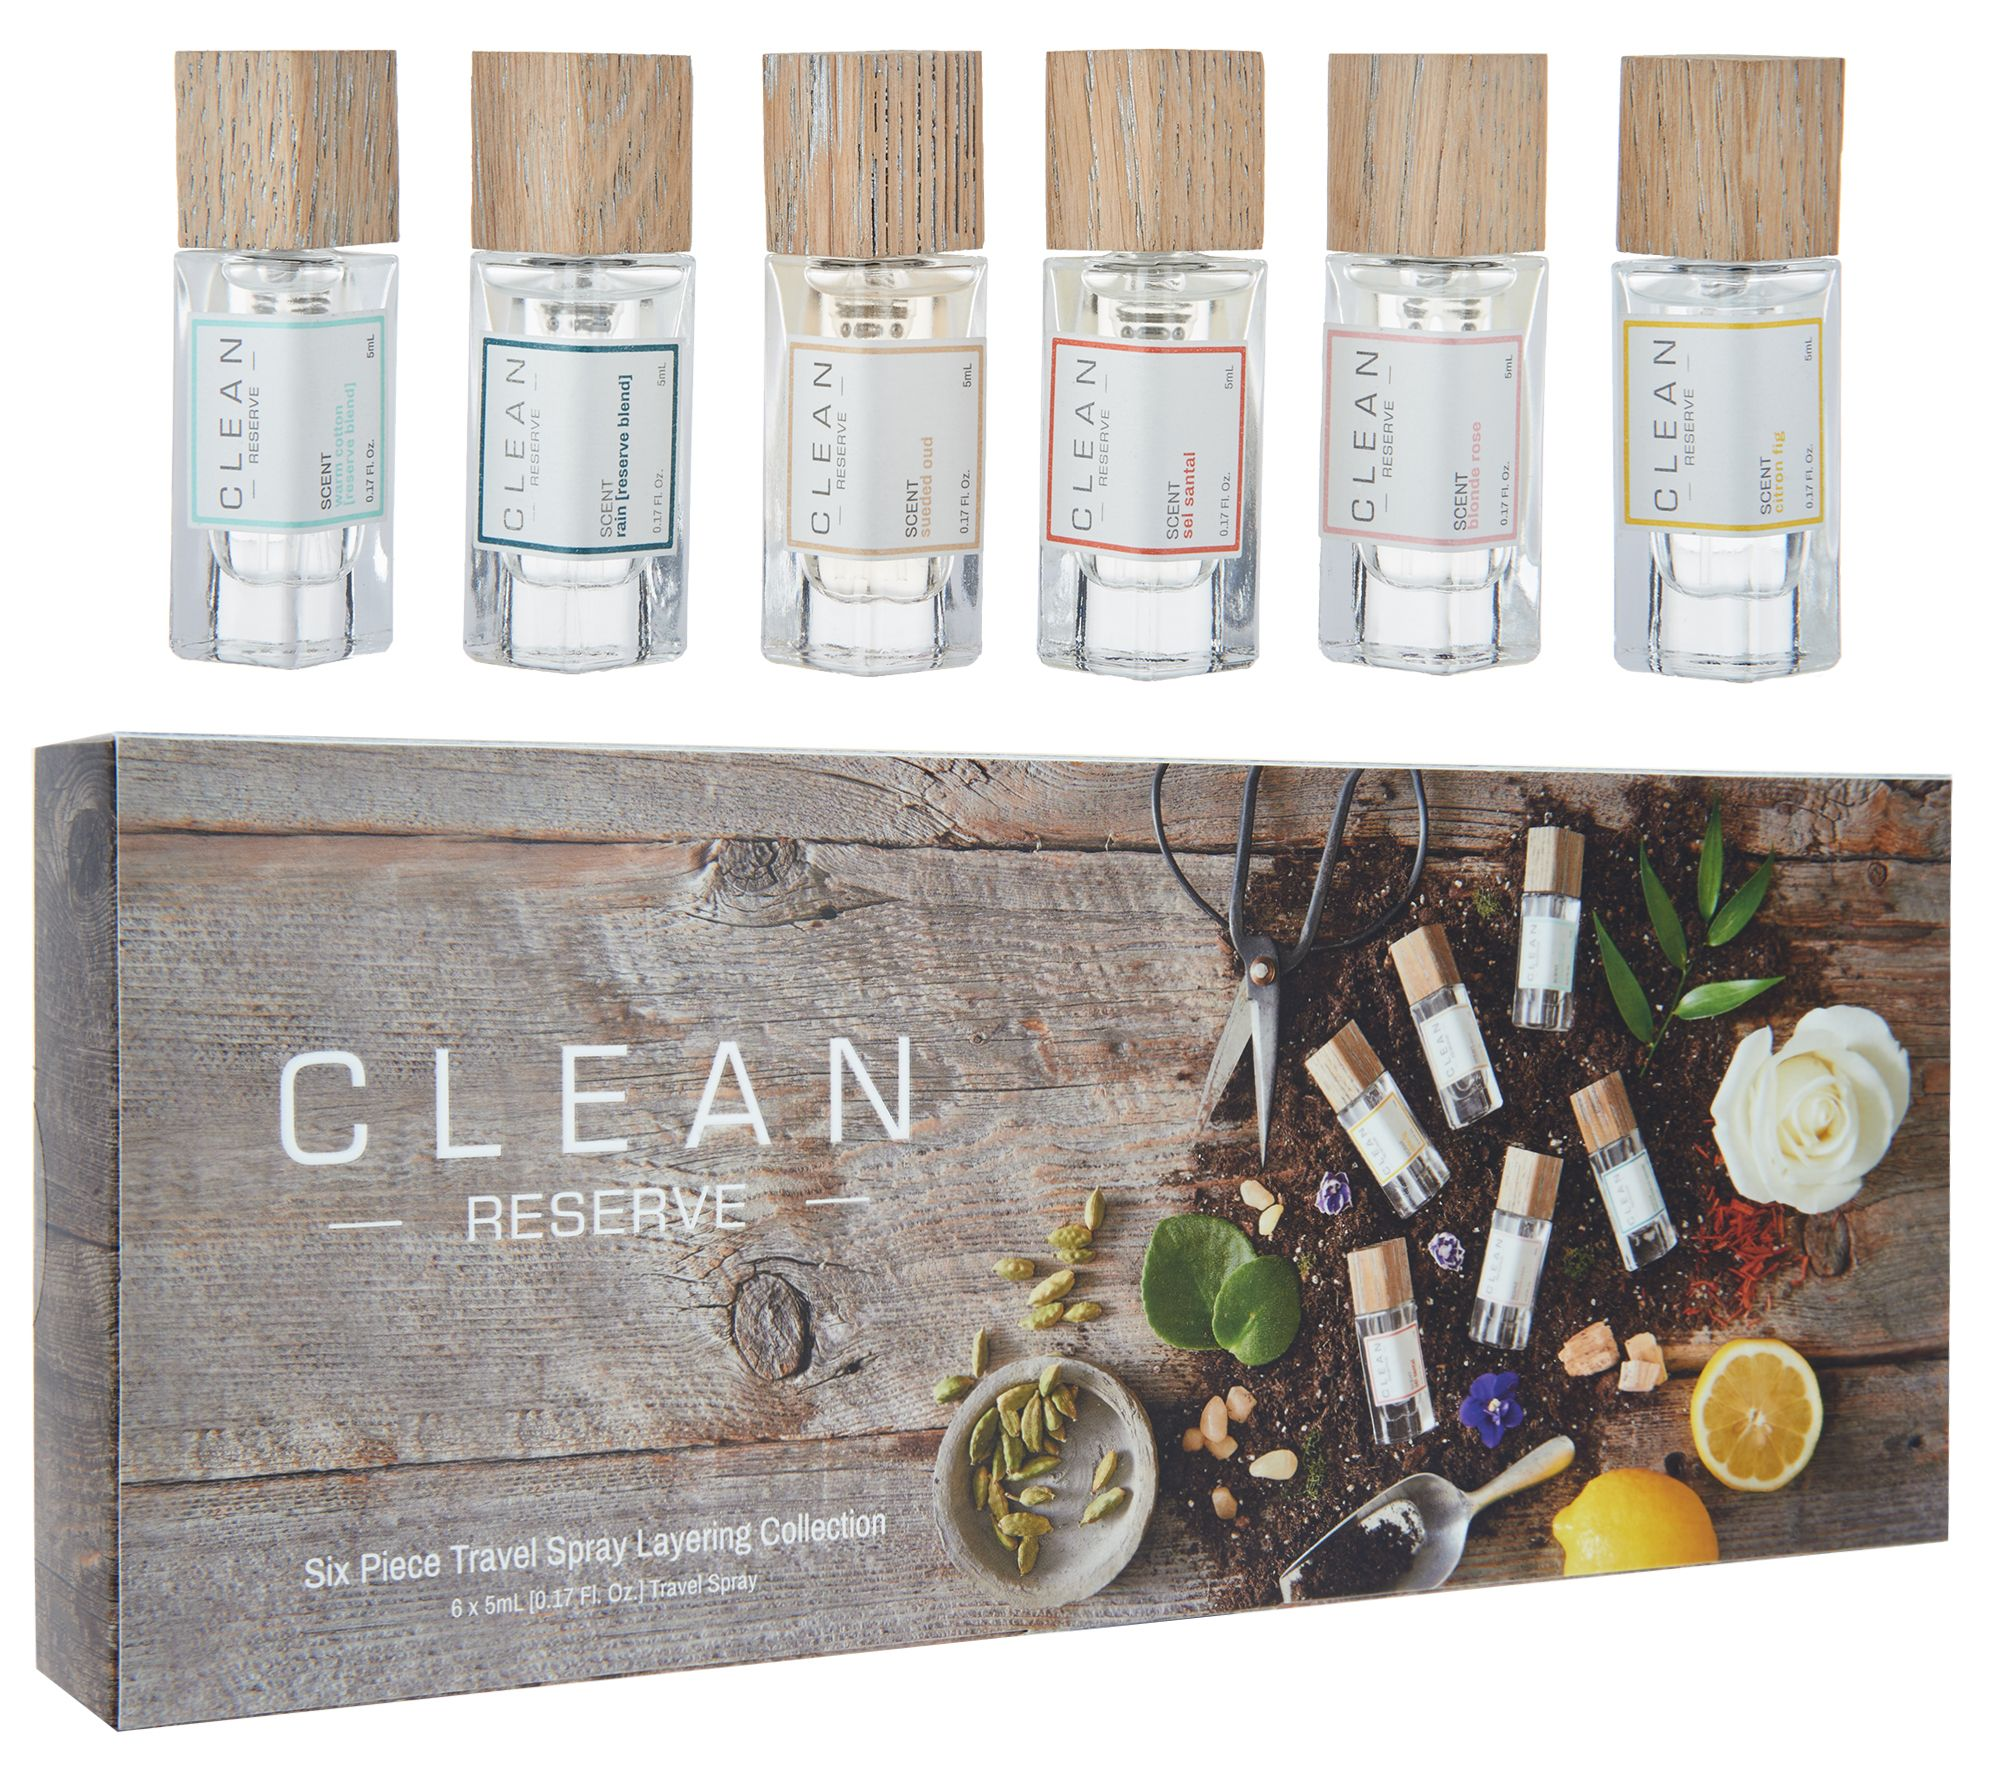 Clean Reserve 6pc Fragrance Layering Collection Page 1 Black Oud 2 Pcs